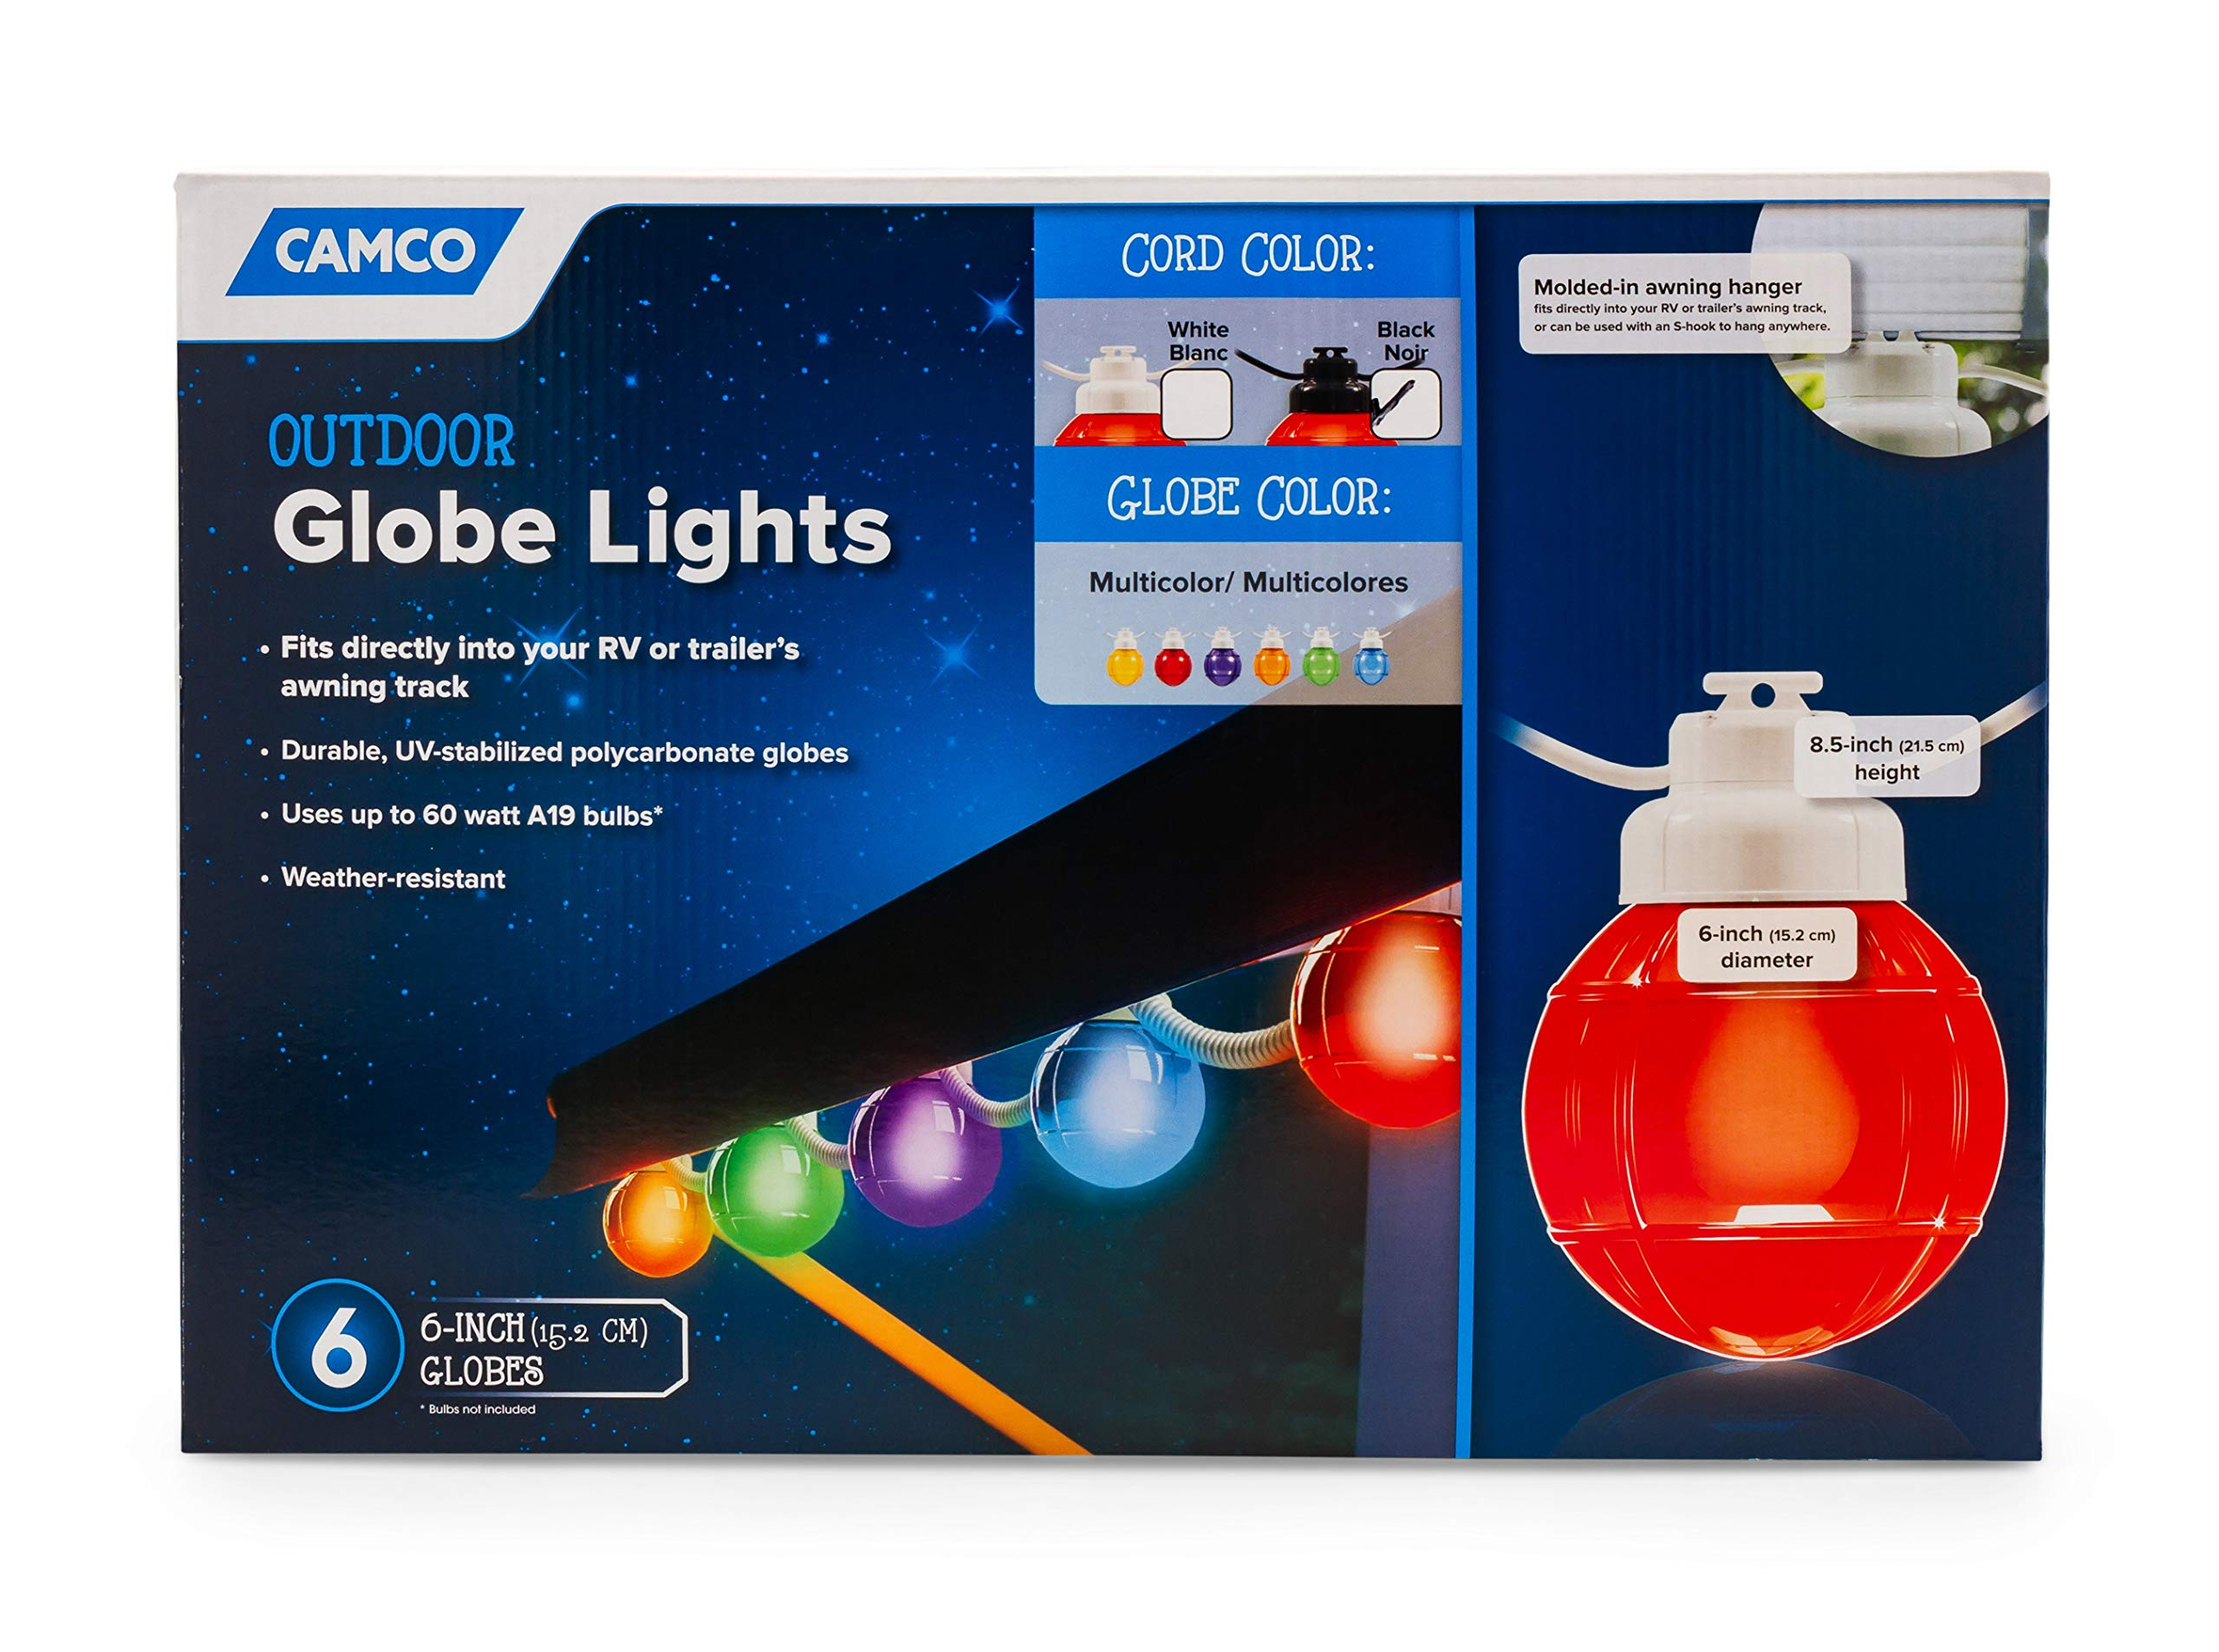 Camco 42760 Decorative RV Awning Globe Lights -6 Multicolor Globes on Black Wire,  Fits Directly into Your RV Awning Track, Great  for Outdoor Events